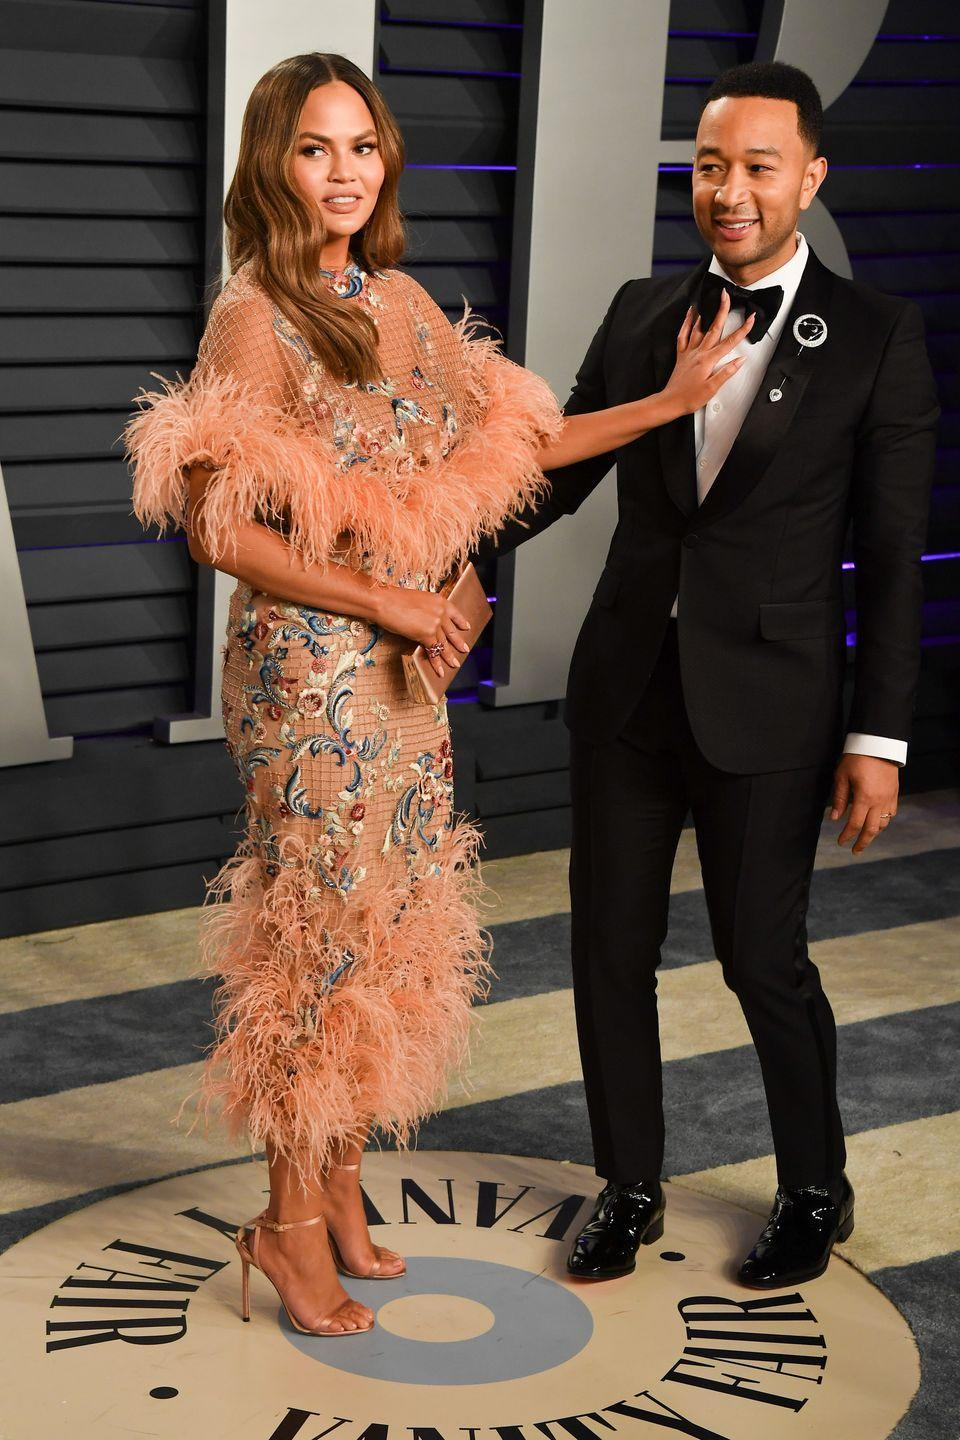 <p>Teigen playfully pushes Legend away while posing on the red carpet at the 2019 Oscars afterparty.</p>